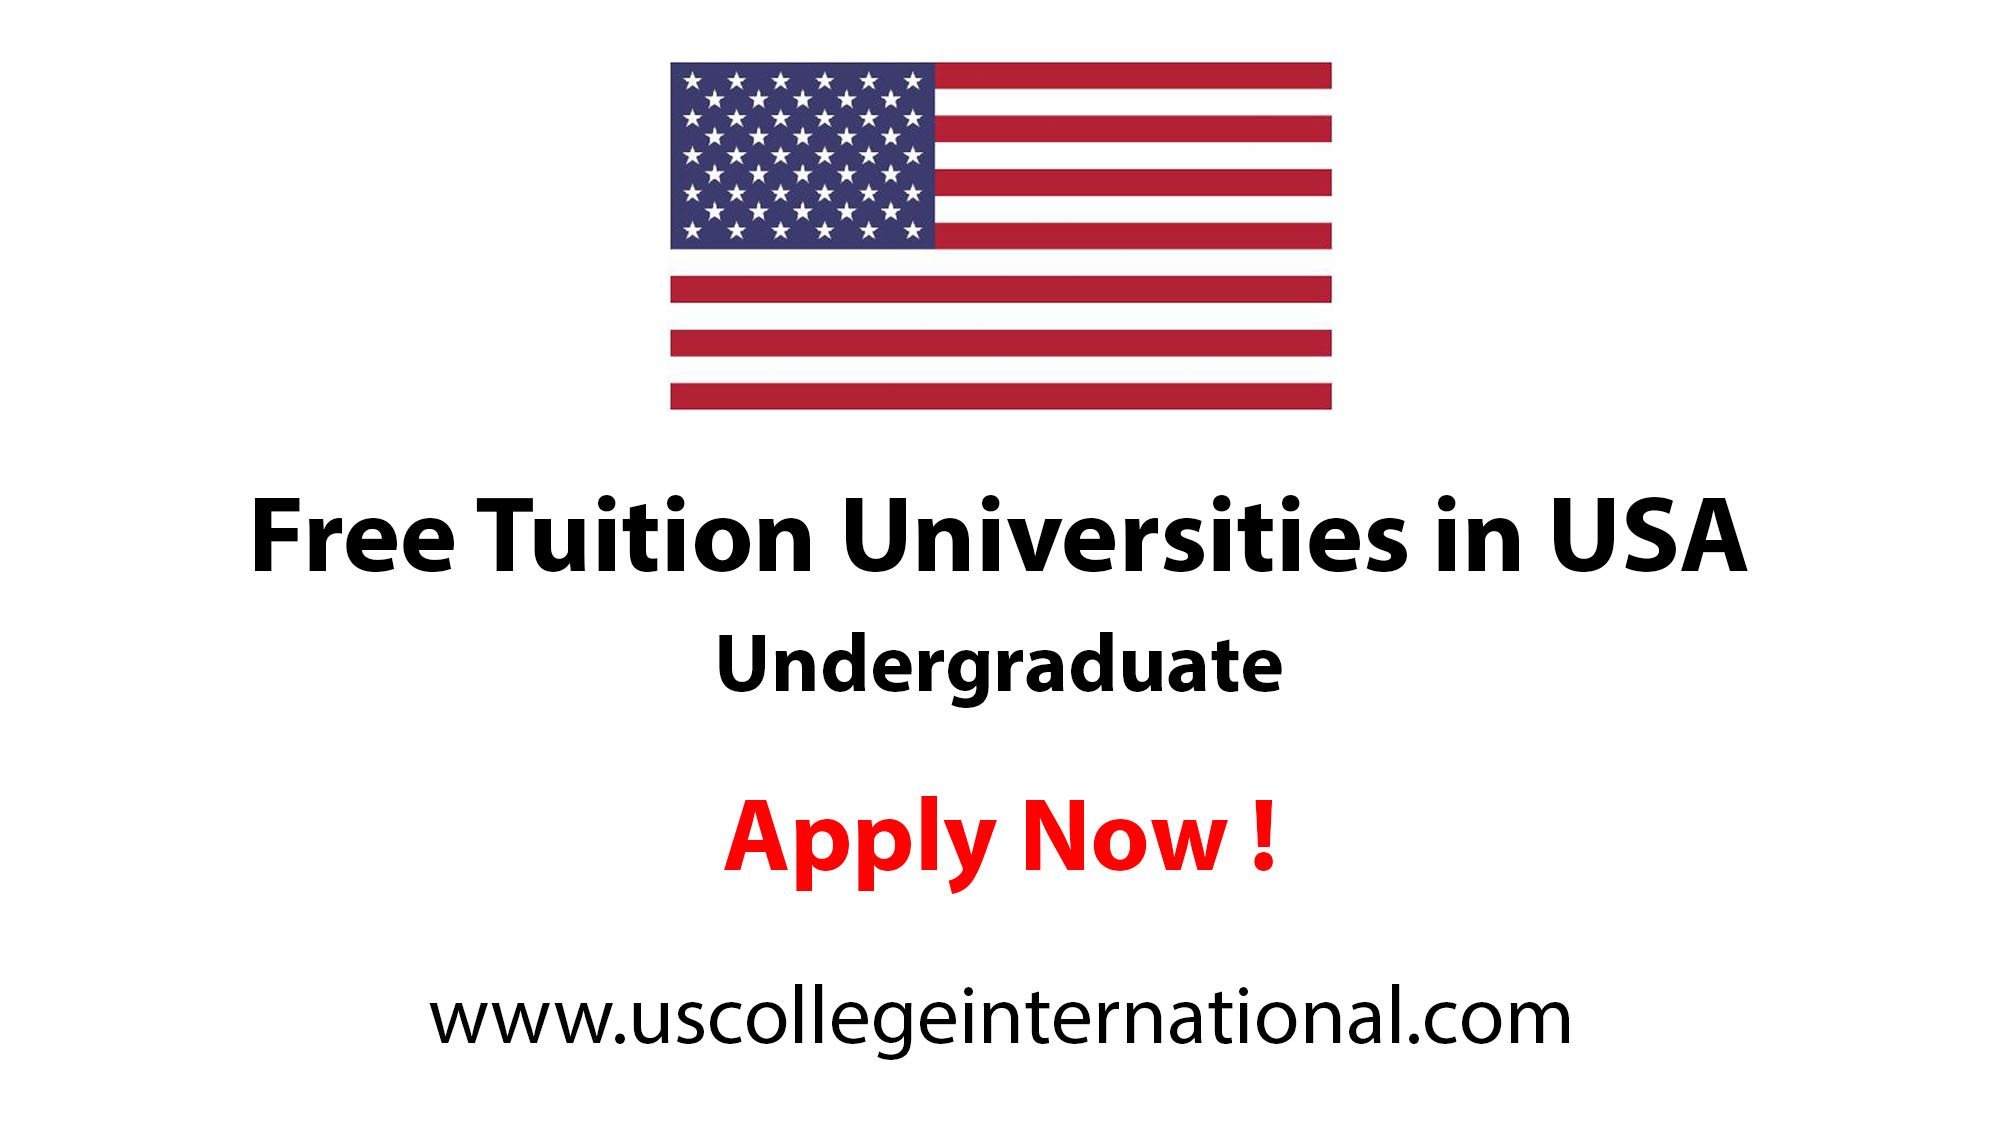 Tuition Free Universities in USA